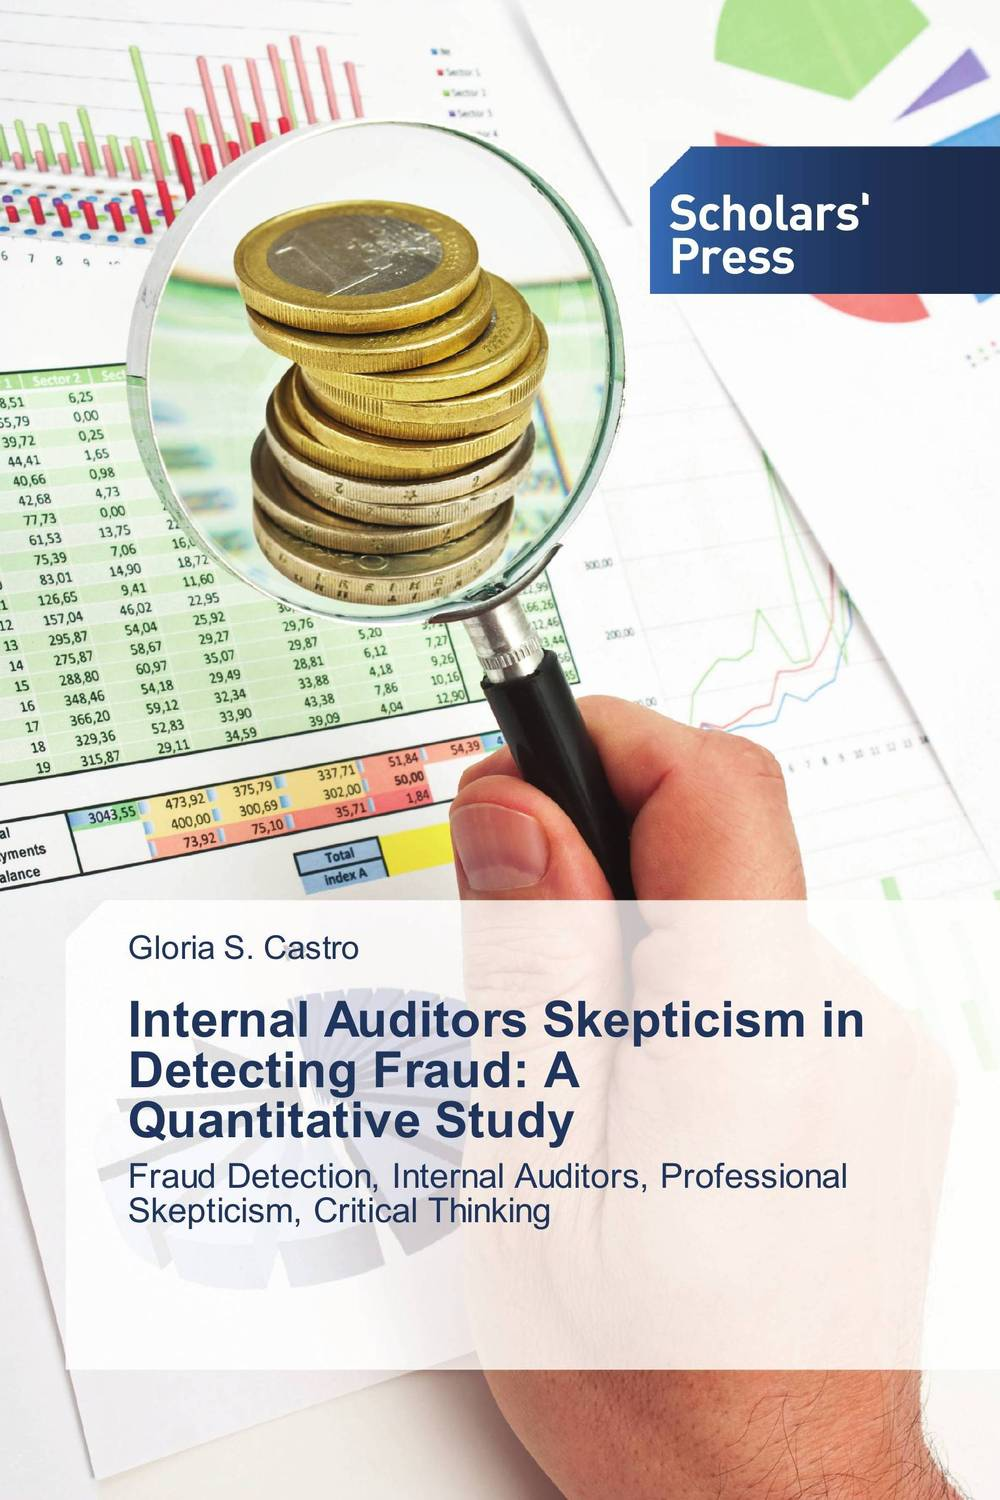 Internal Auditors Skepticism in Detecting Fraud: A Quantitative Study evaluation of the internal control practices